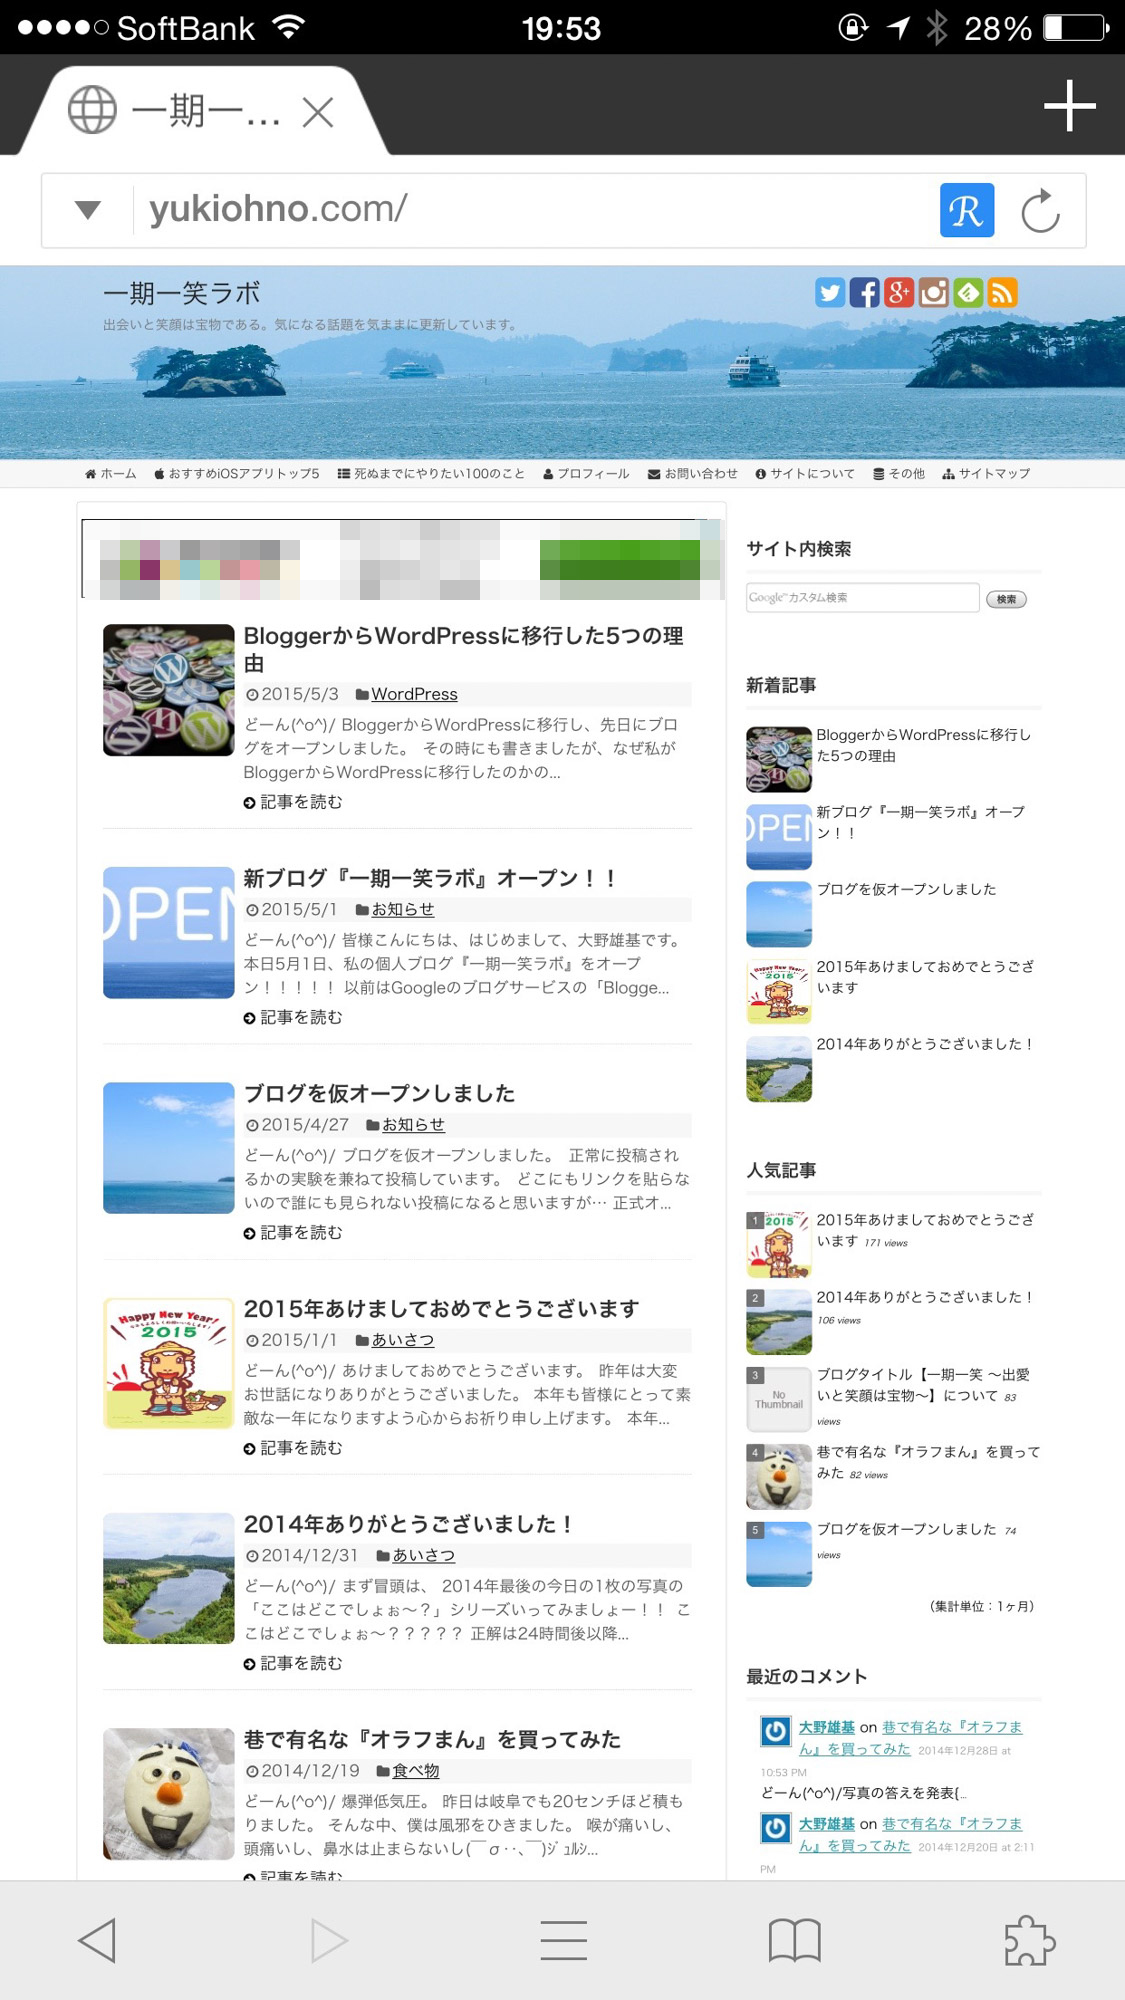 browser-wp-4305